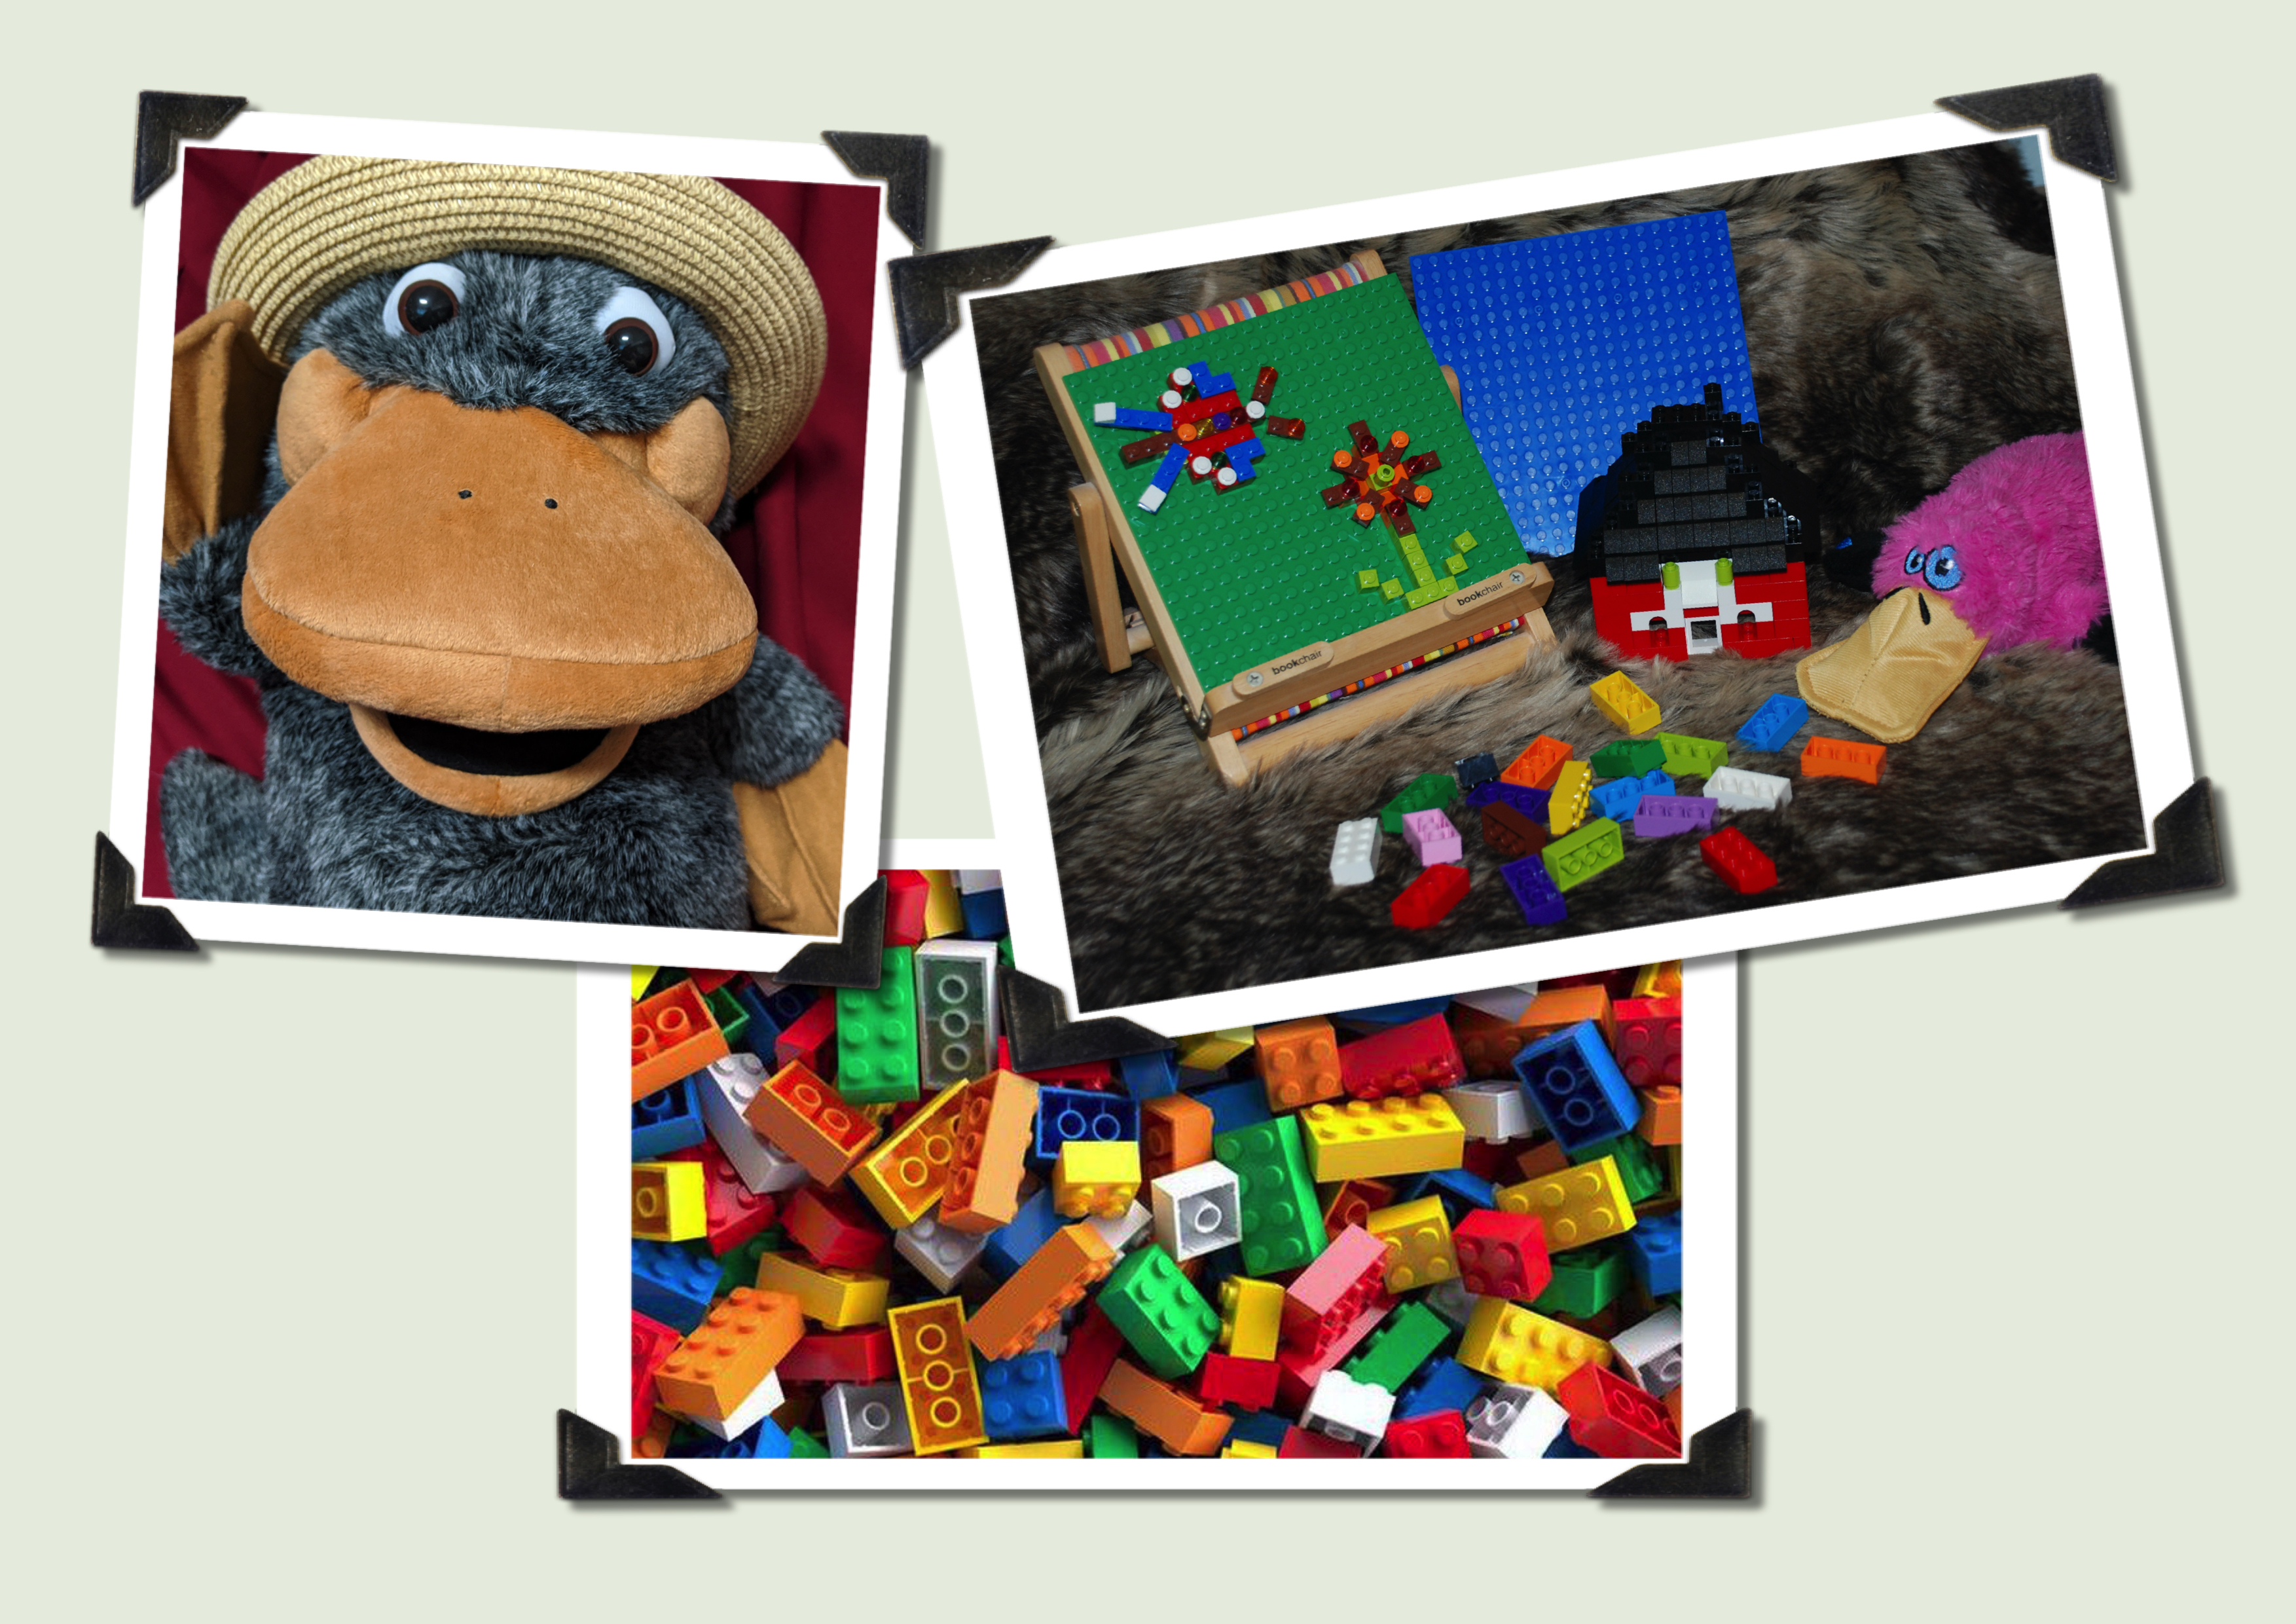 A picture with three photos in it. One is a picture of Theo the Platypus puppet, the next is an array of lego activities with Anno the pink platypus toy. At the bottom is a picture of lots of lego bricks